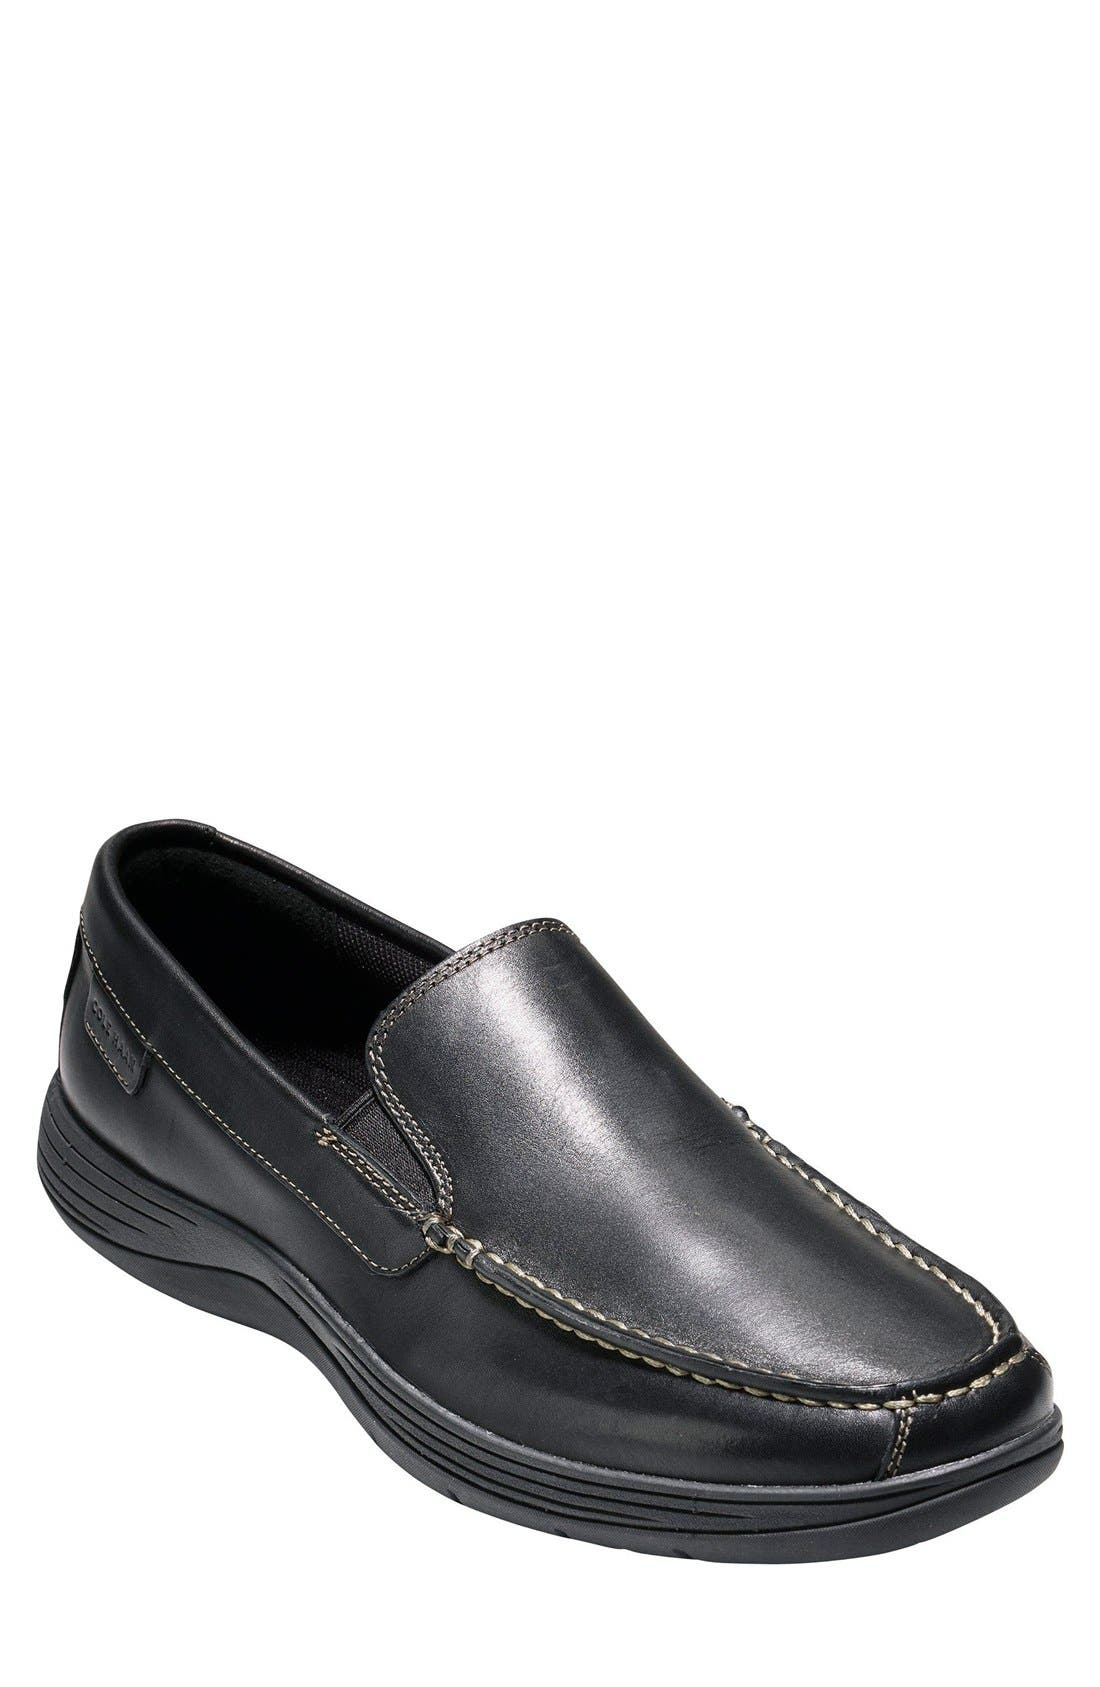 lewiston men ★ cole haan 'lewiston' loafer (men) @ today price mens wide shoes, shop new arrivals & must-have styles [cole haan 'lewiston' loafer (men)] shop with guaranteed low.